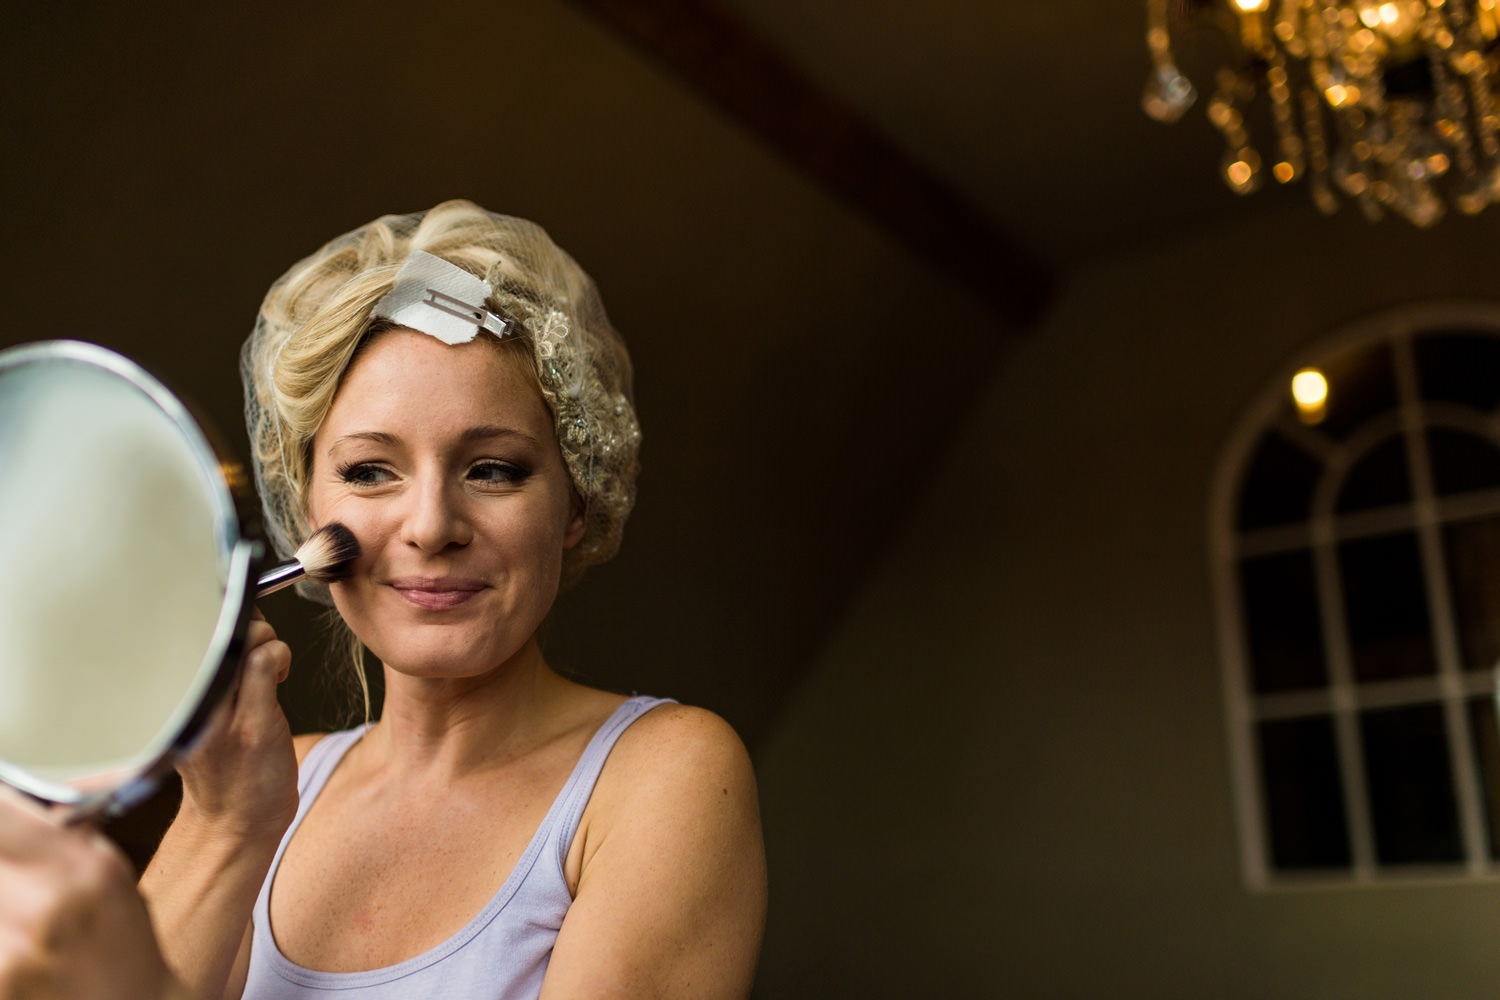 The-Bell-Inn-Ticehurst-Wedding-Photographer09